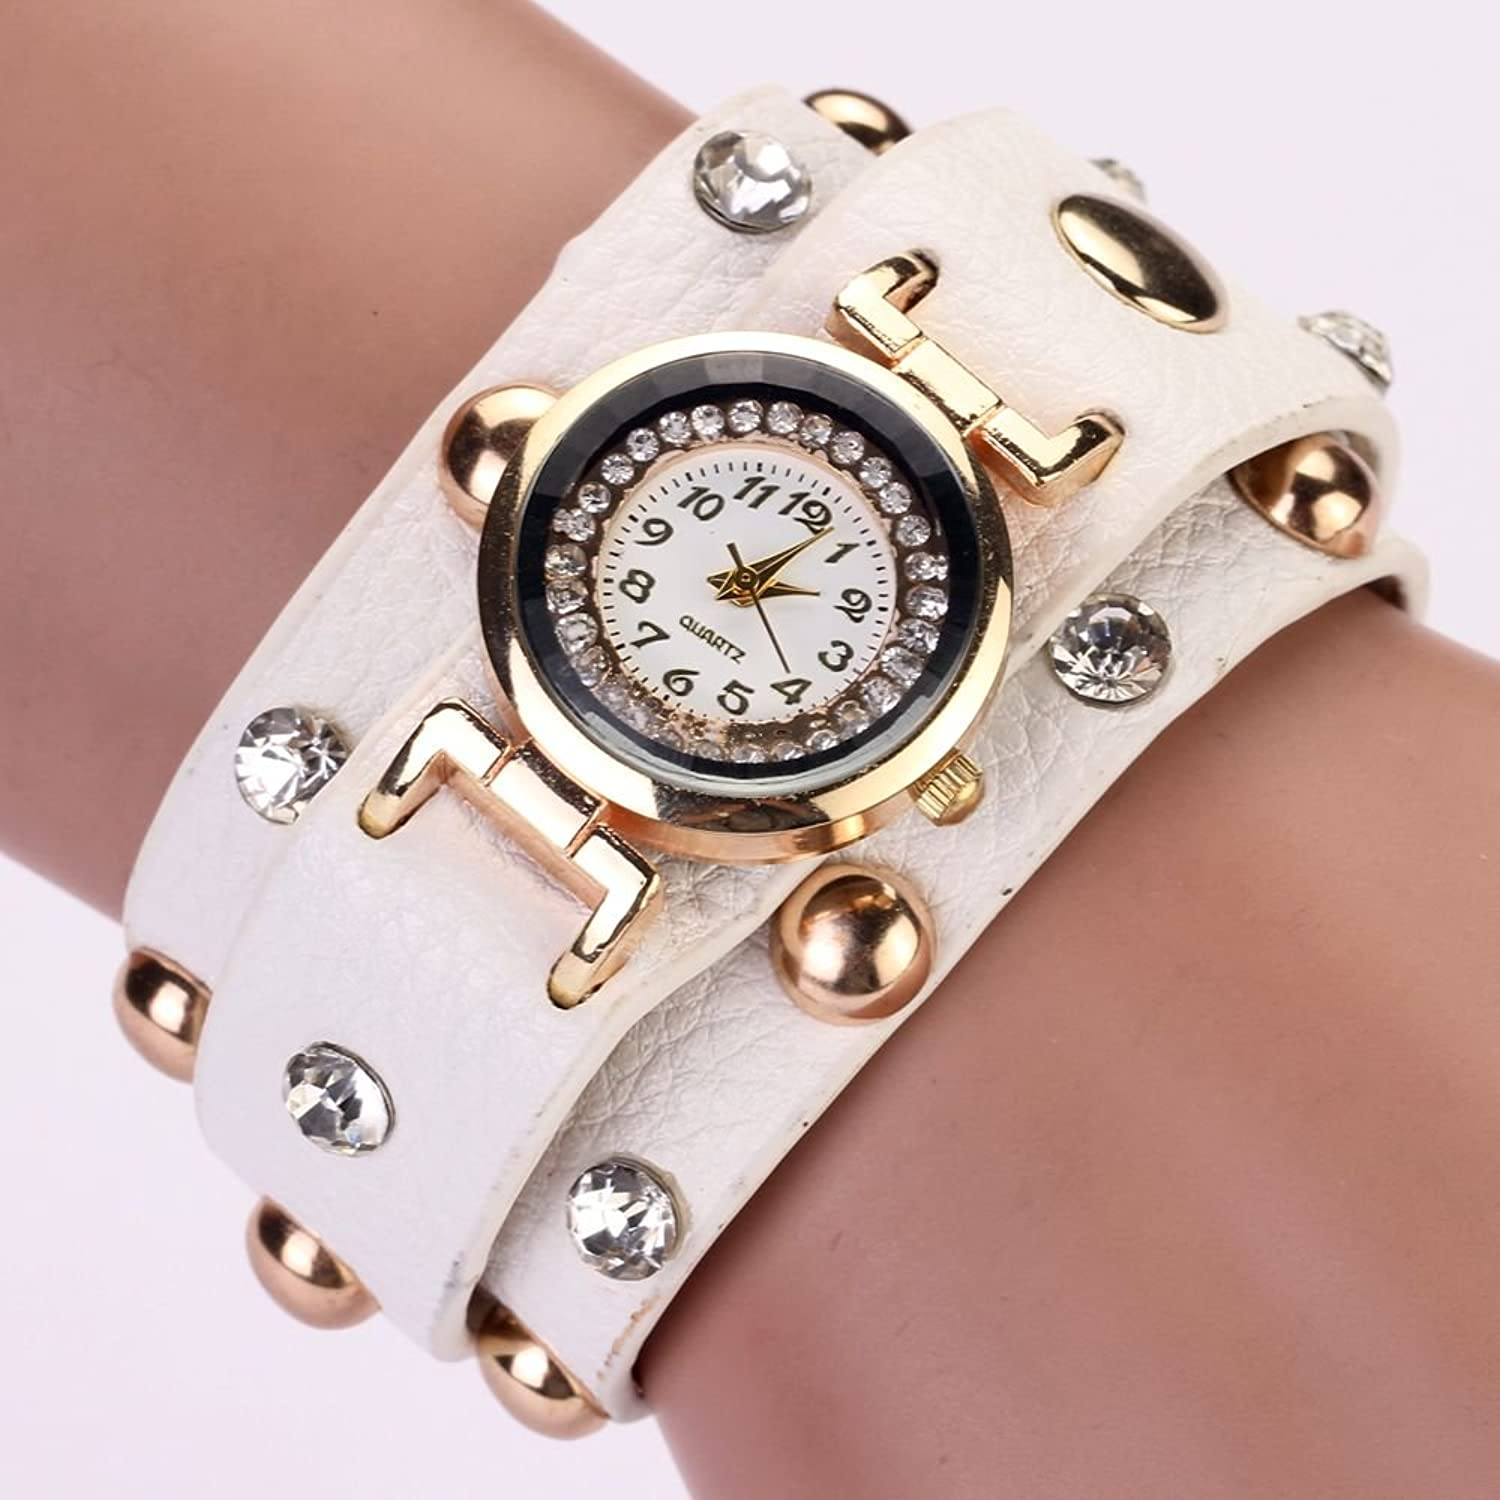 Amazon.com: Zopho (TM) 77 Fashion Fashion Casual PU Leather Bracelet Wristwatch Watch Women Reloj Mujer Relogios Femininos Watch XR526: Jewelry